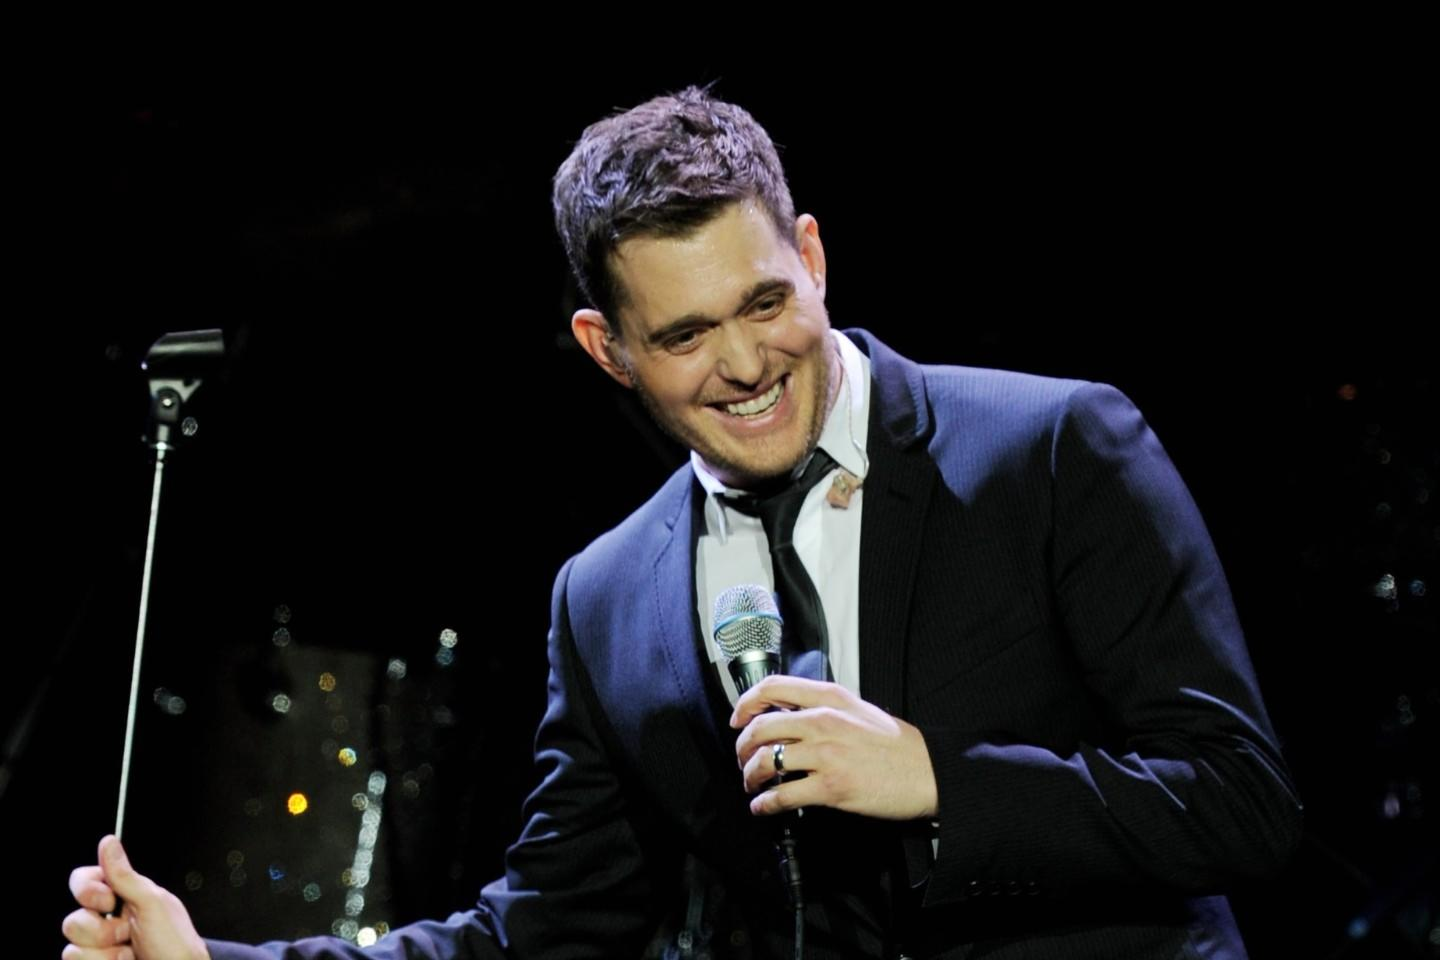 Michael Buble announces first tour in two years, to receive star on Hollywood Walk of Fame